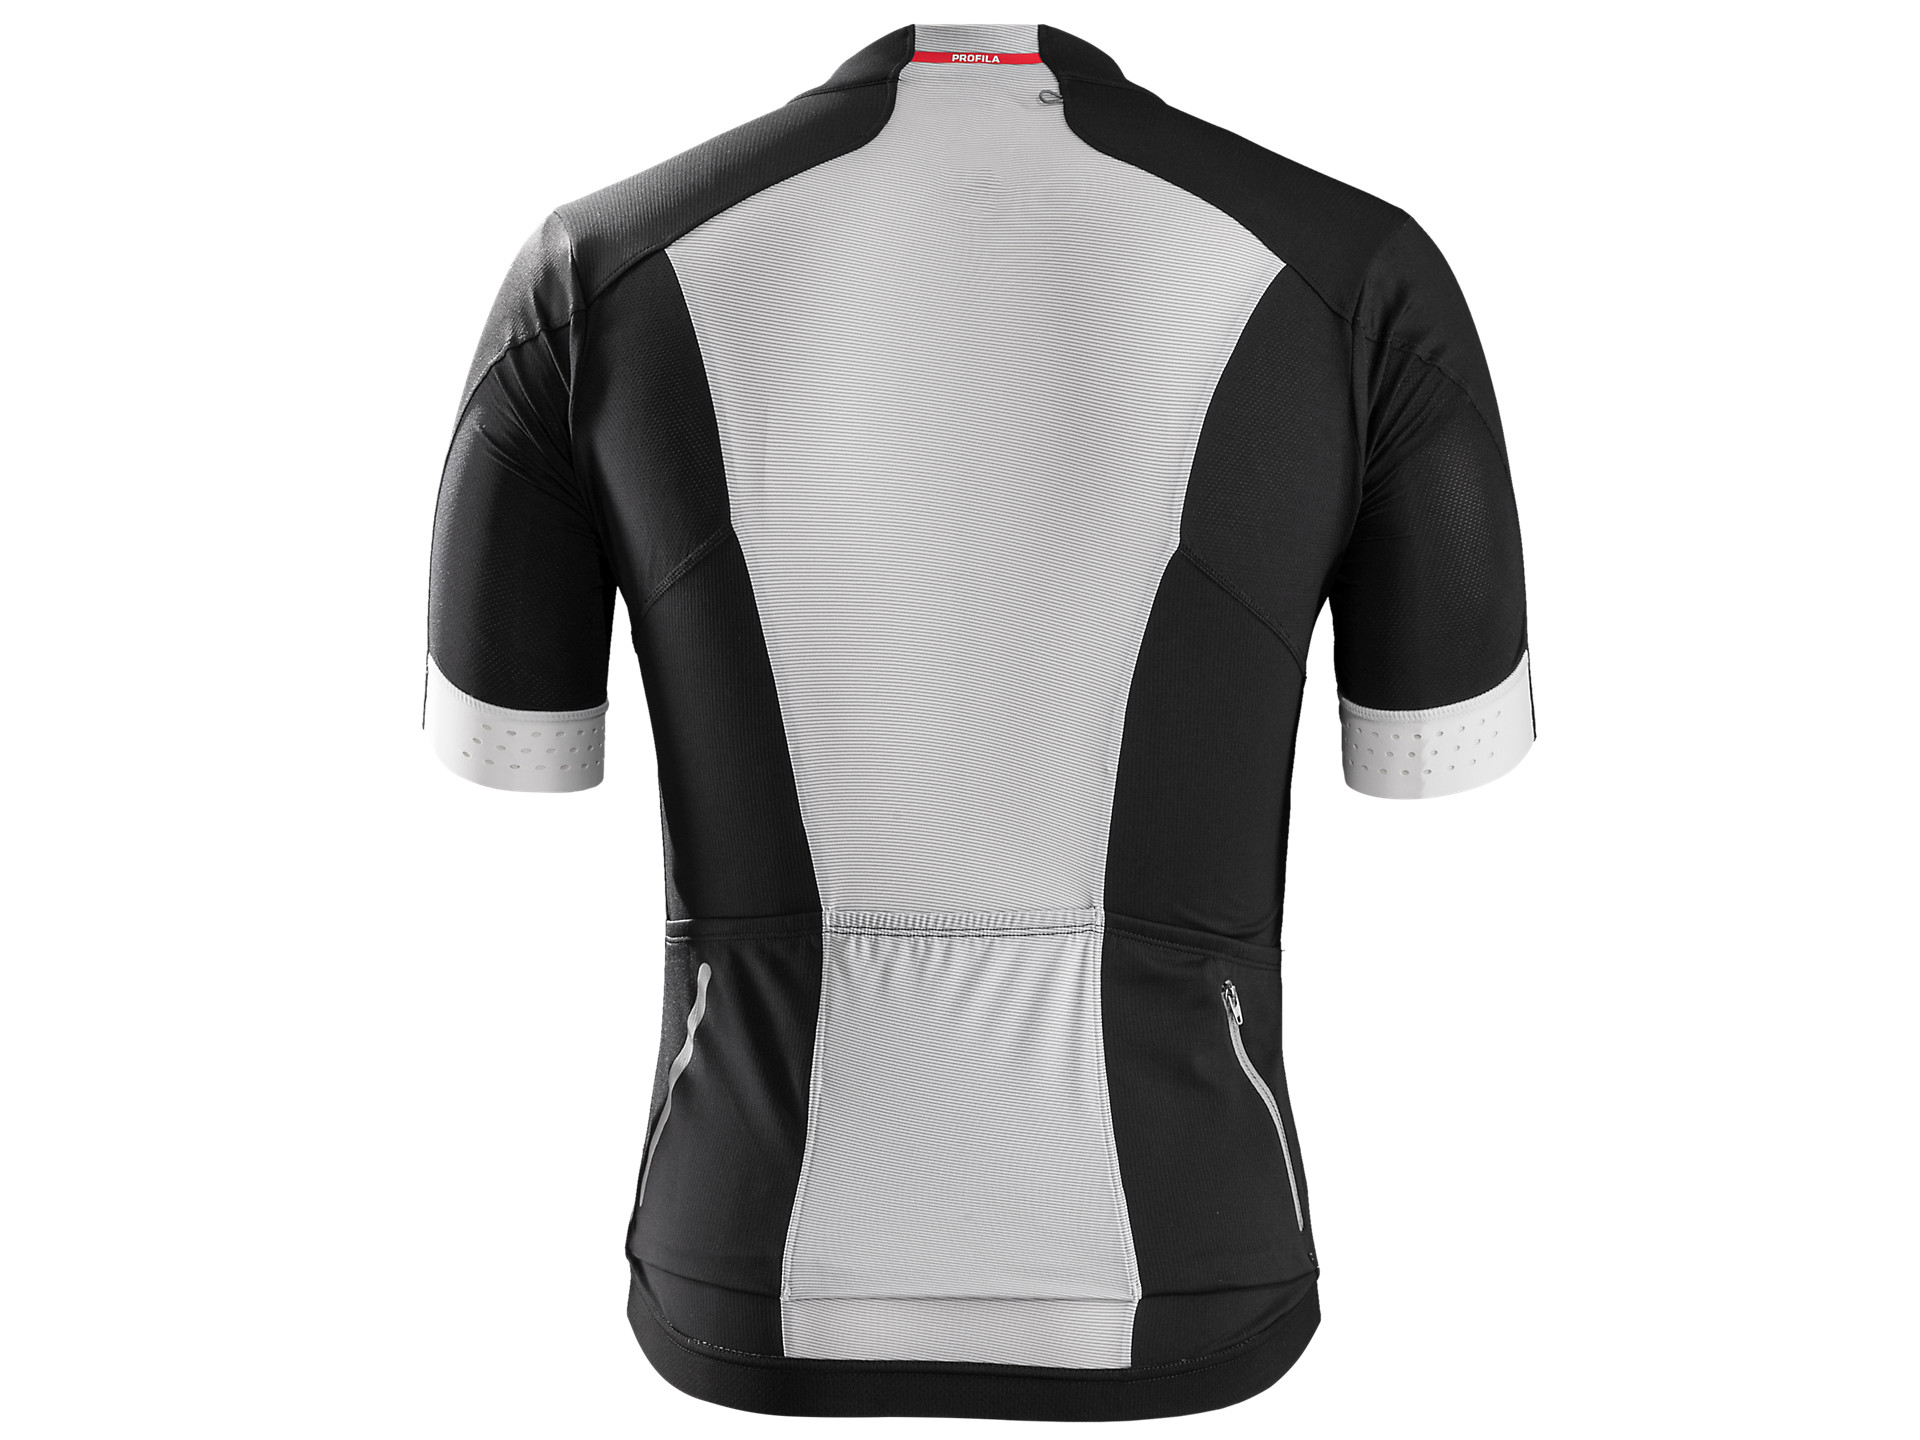 Bontrager Velocis Cycling Jersey. Overview  Features  Tech specs  Sizing    fit  Reviews  FAQs  Buy. Prev Next 2cedaeead